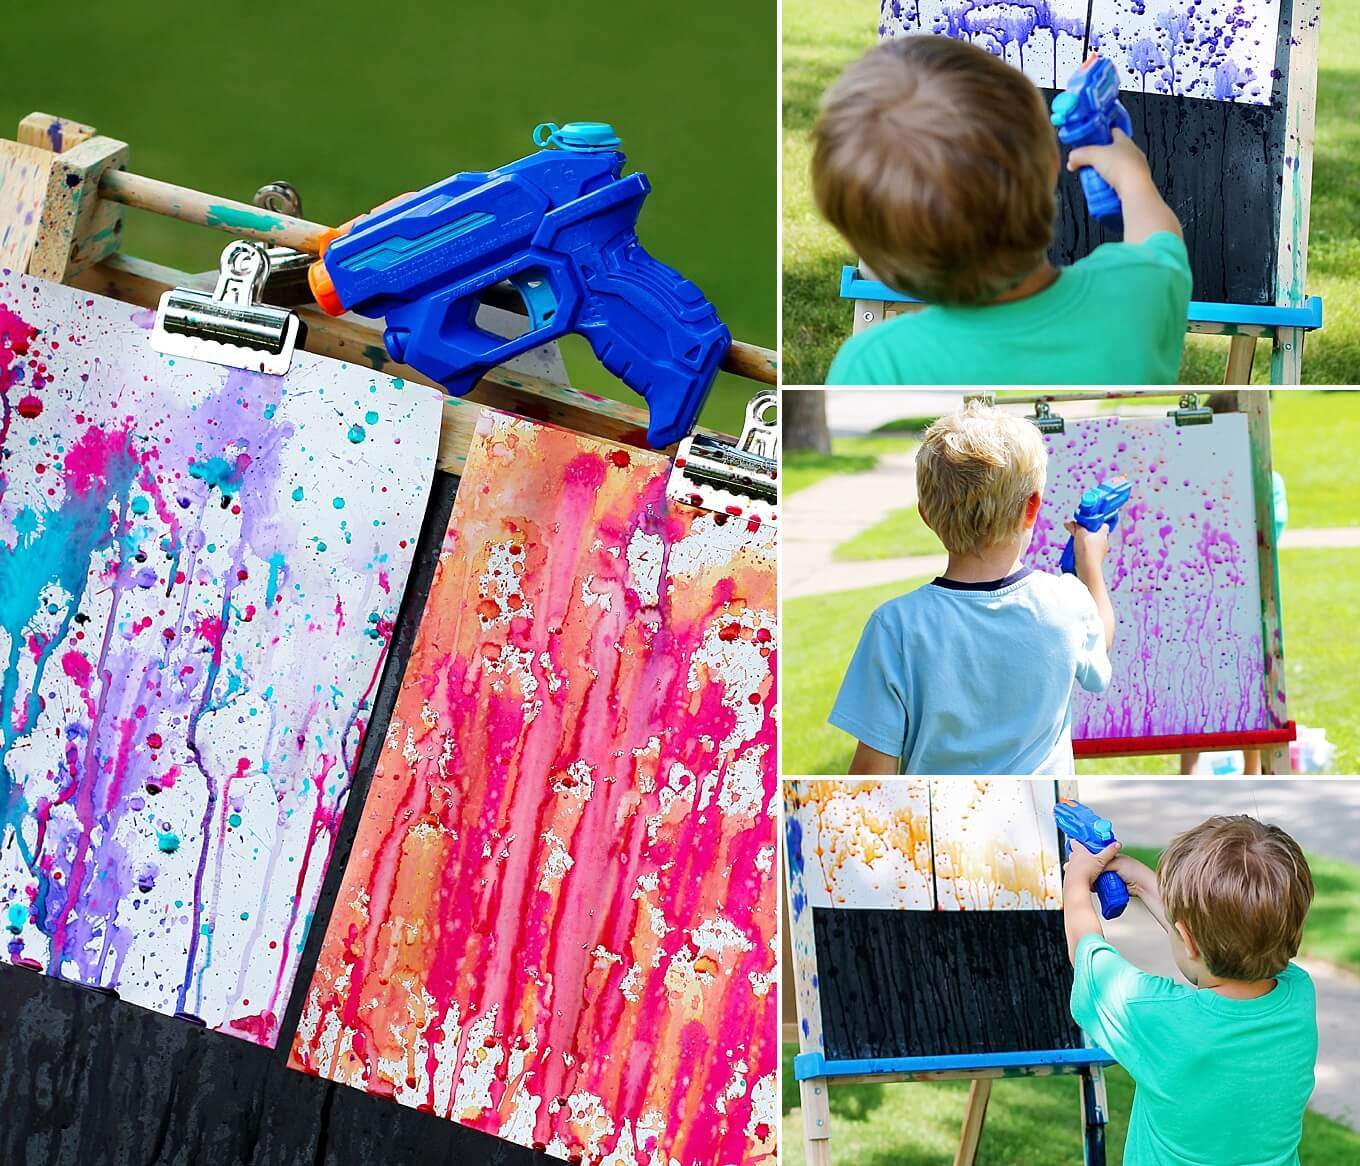 Squirting the art onto a canvas